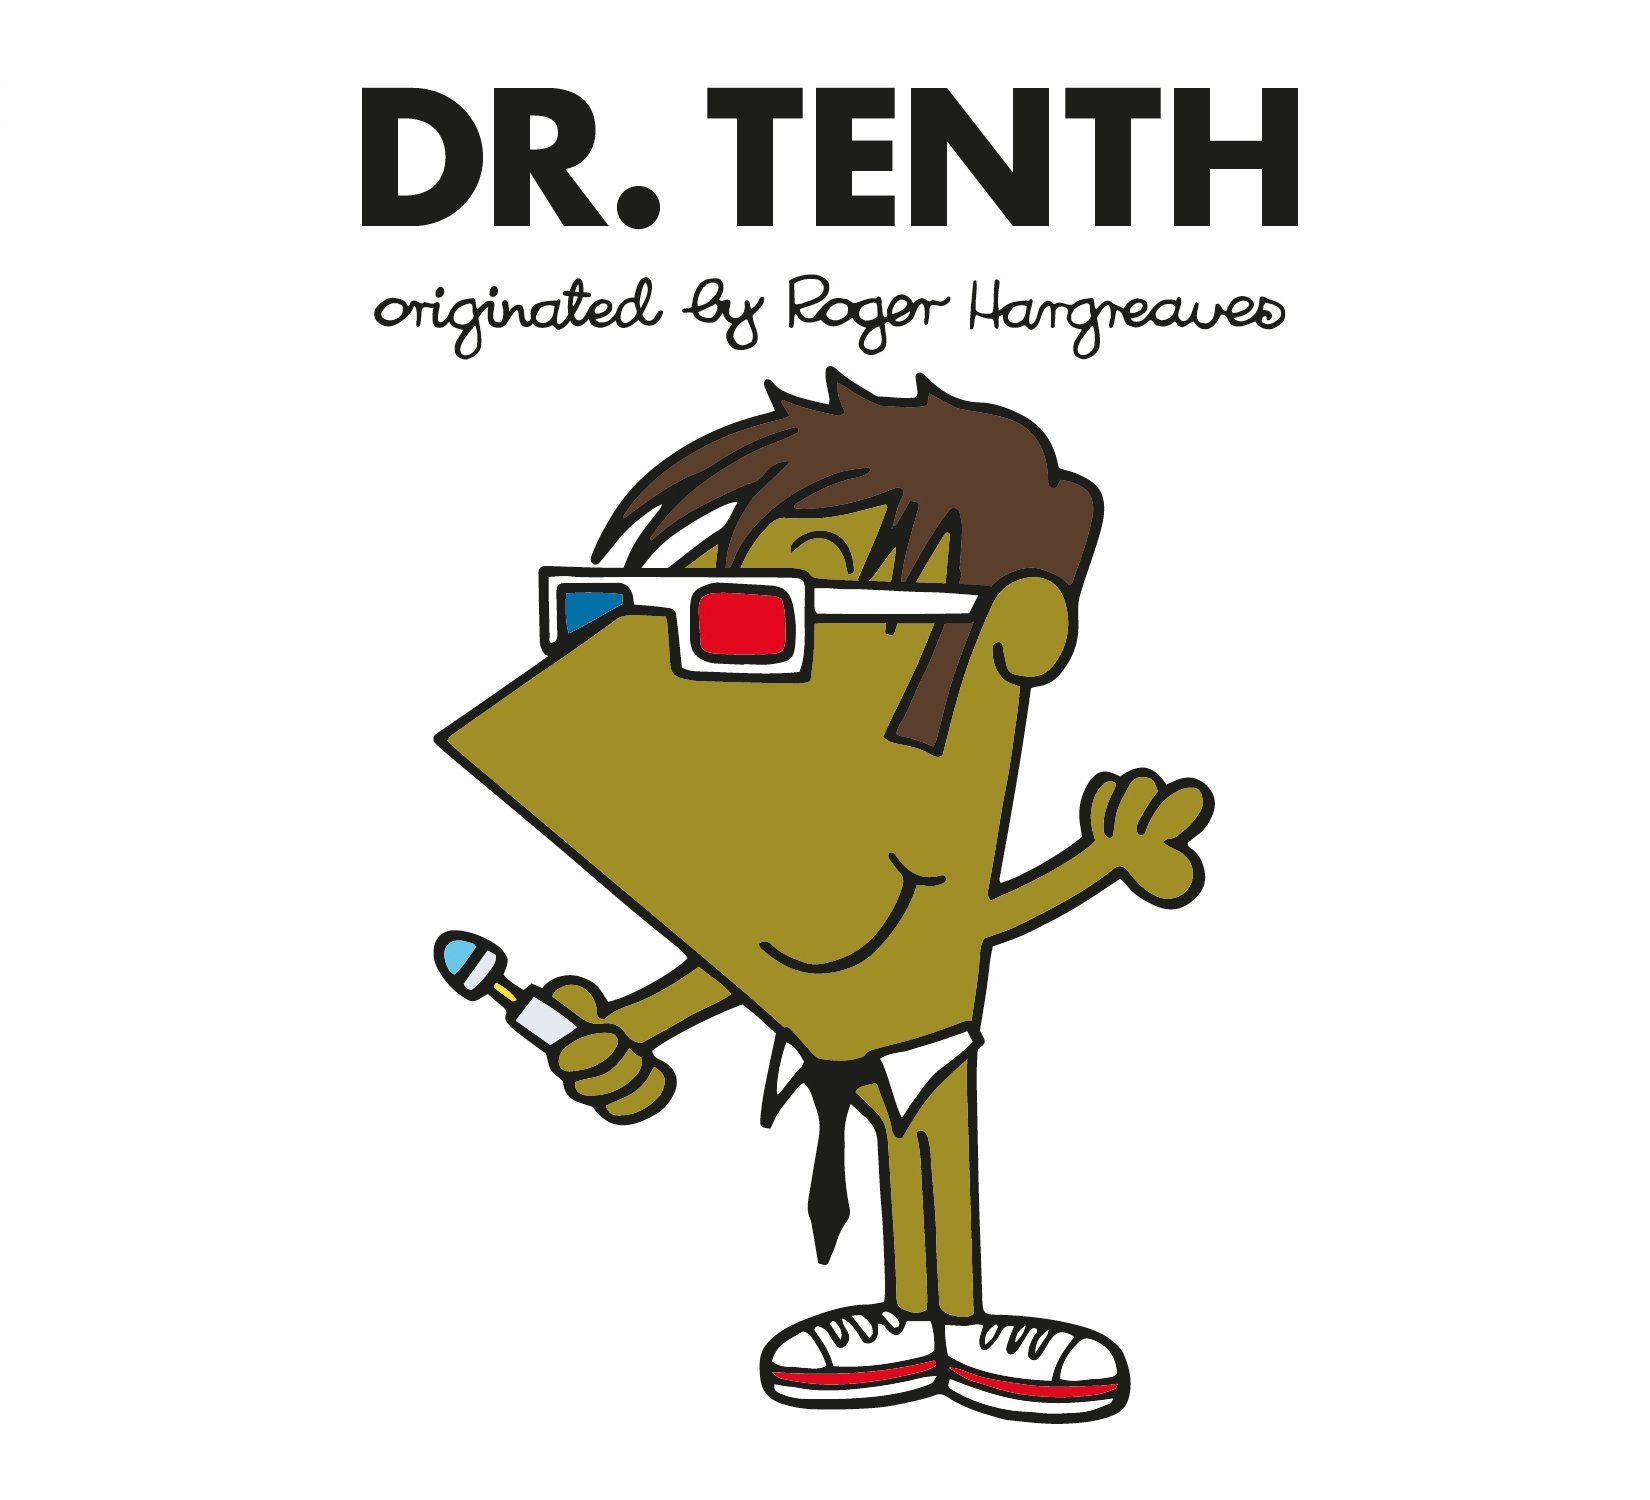 doctor who dr tenth roger hargreaves dr men adam hargreaves